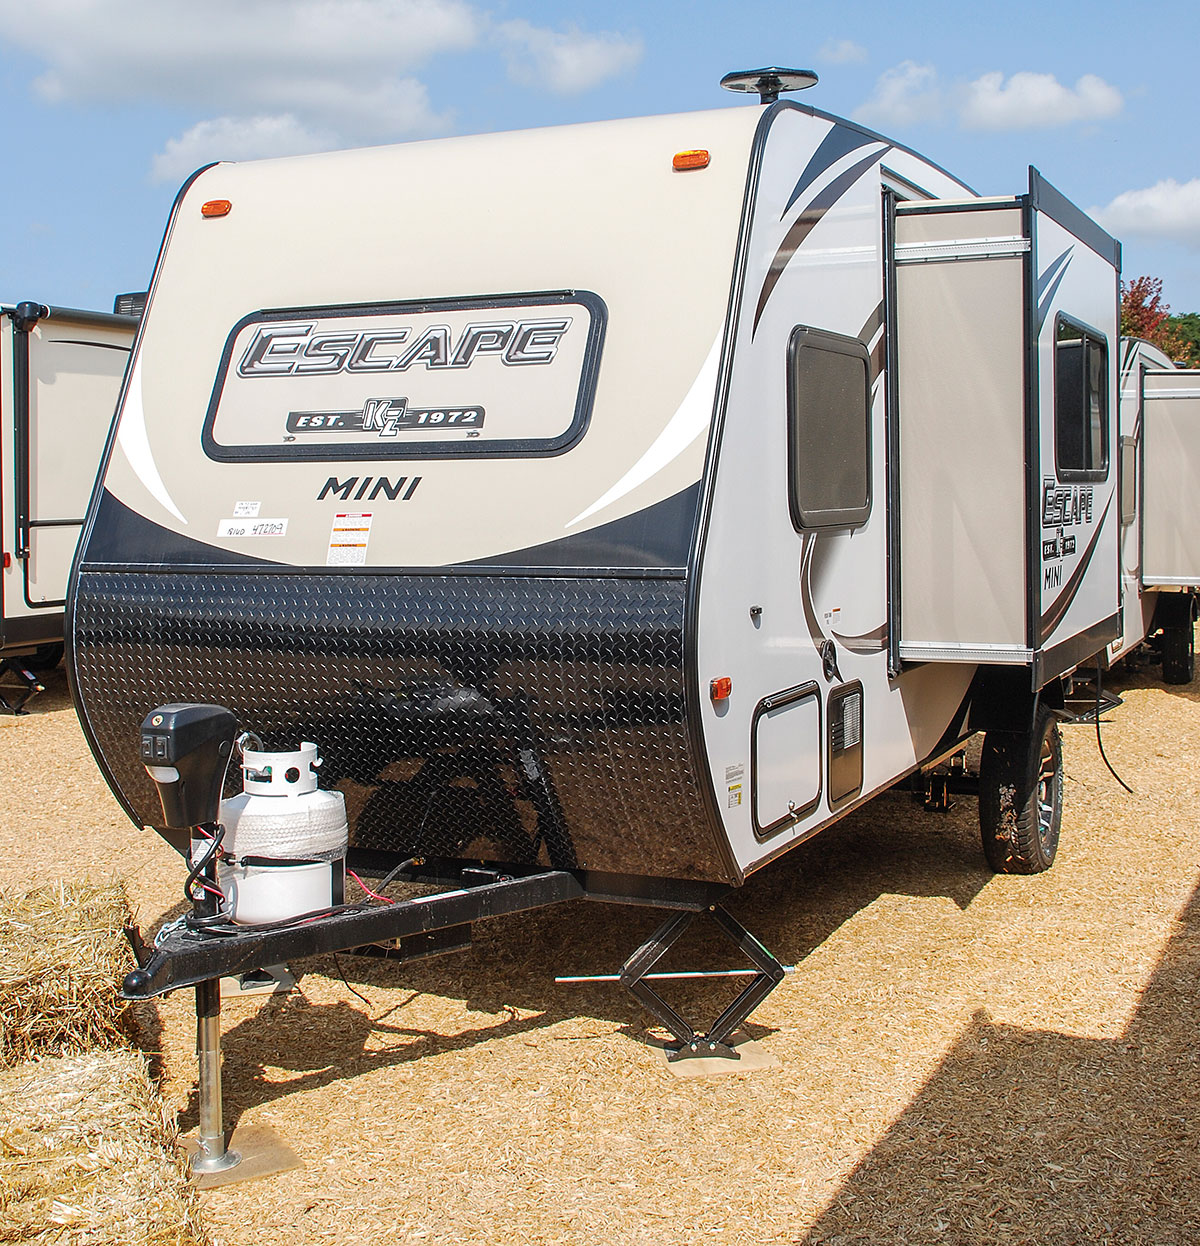 Travel Trailers With Outdoor Kitchens: Escape Mini M181UD Ultra Lightweight Travel Trailer